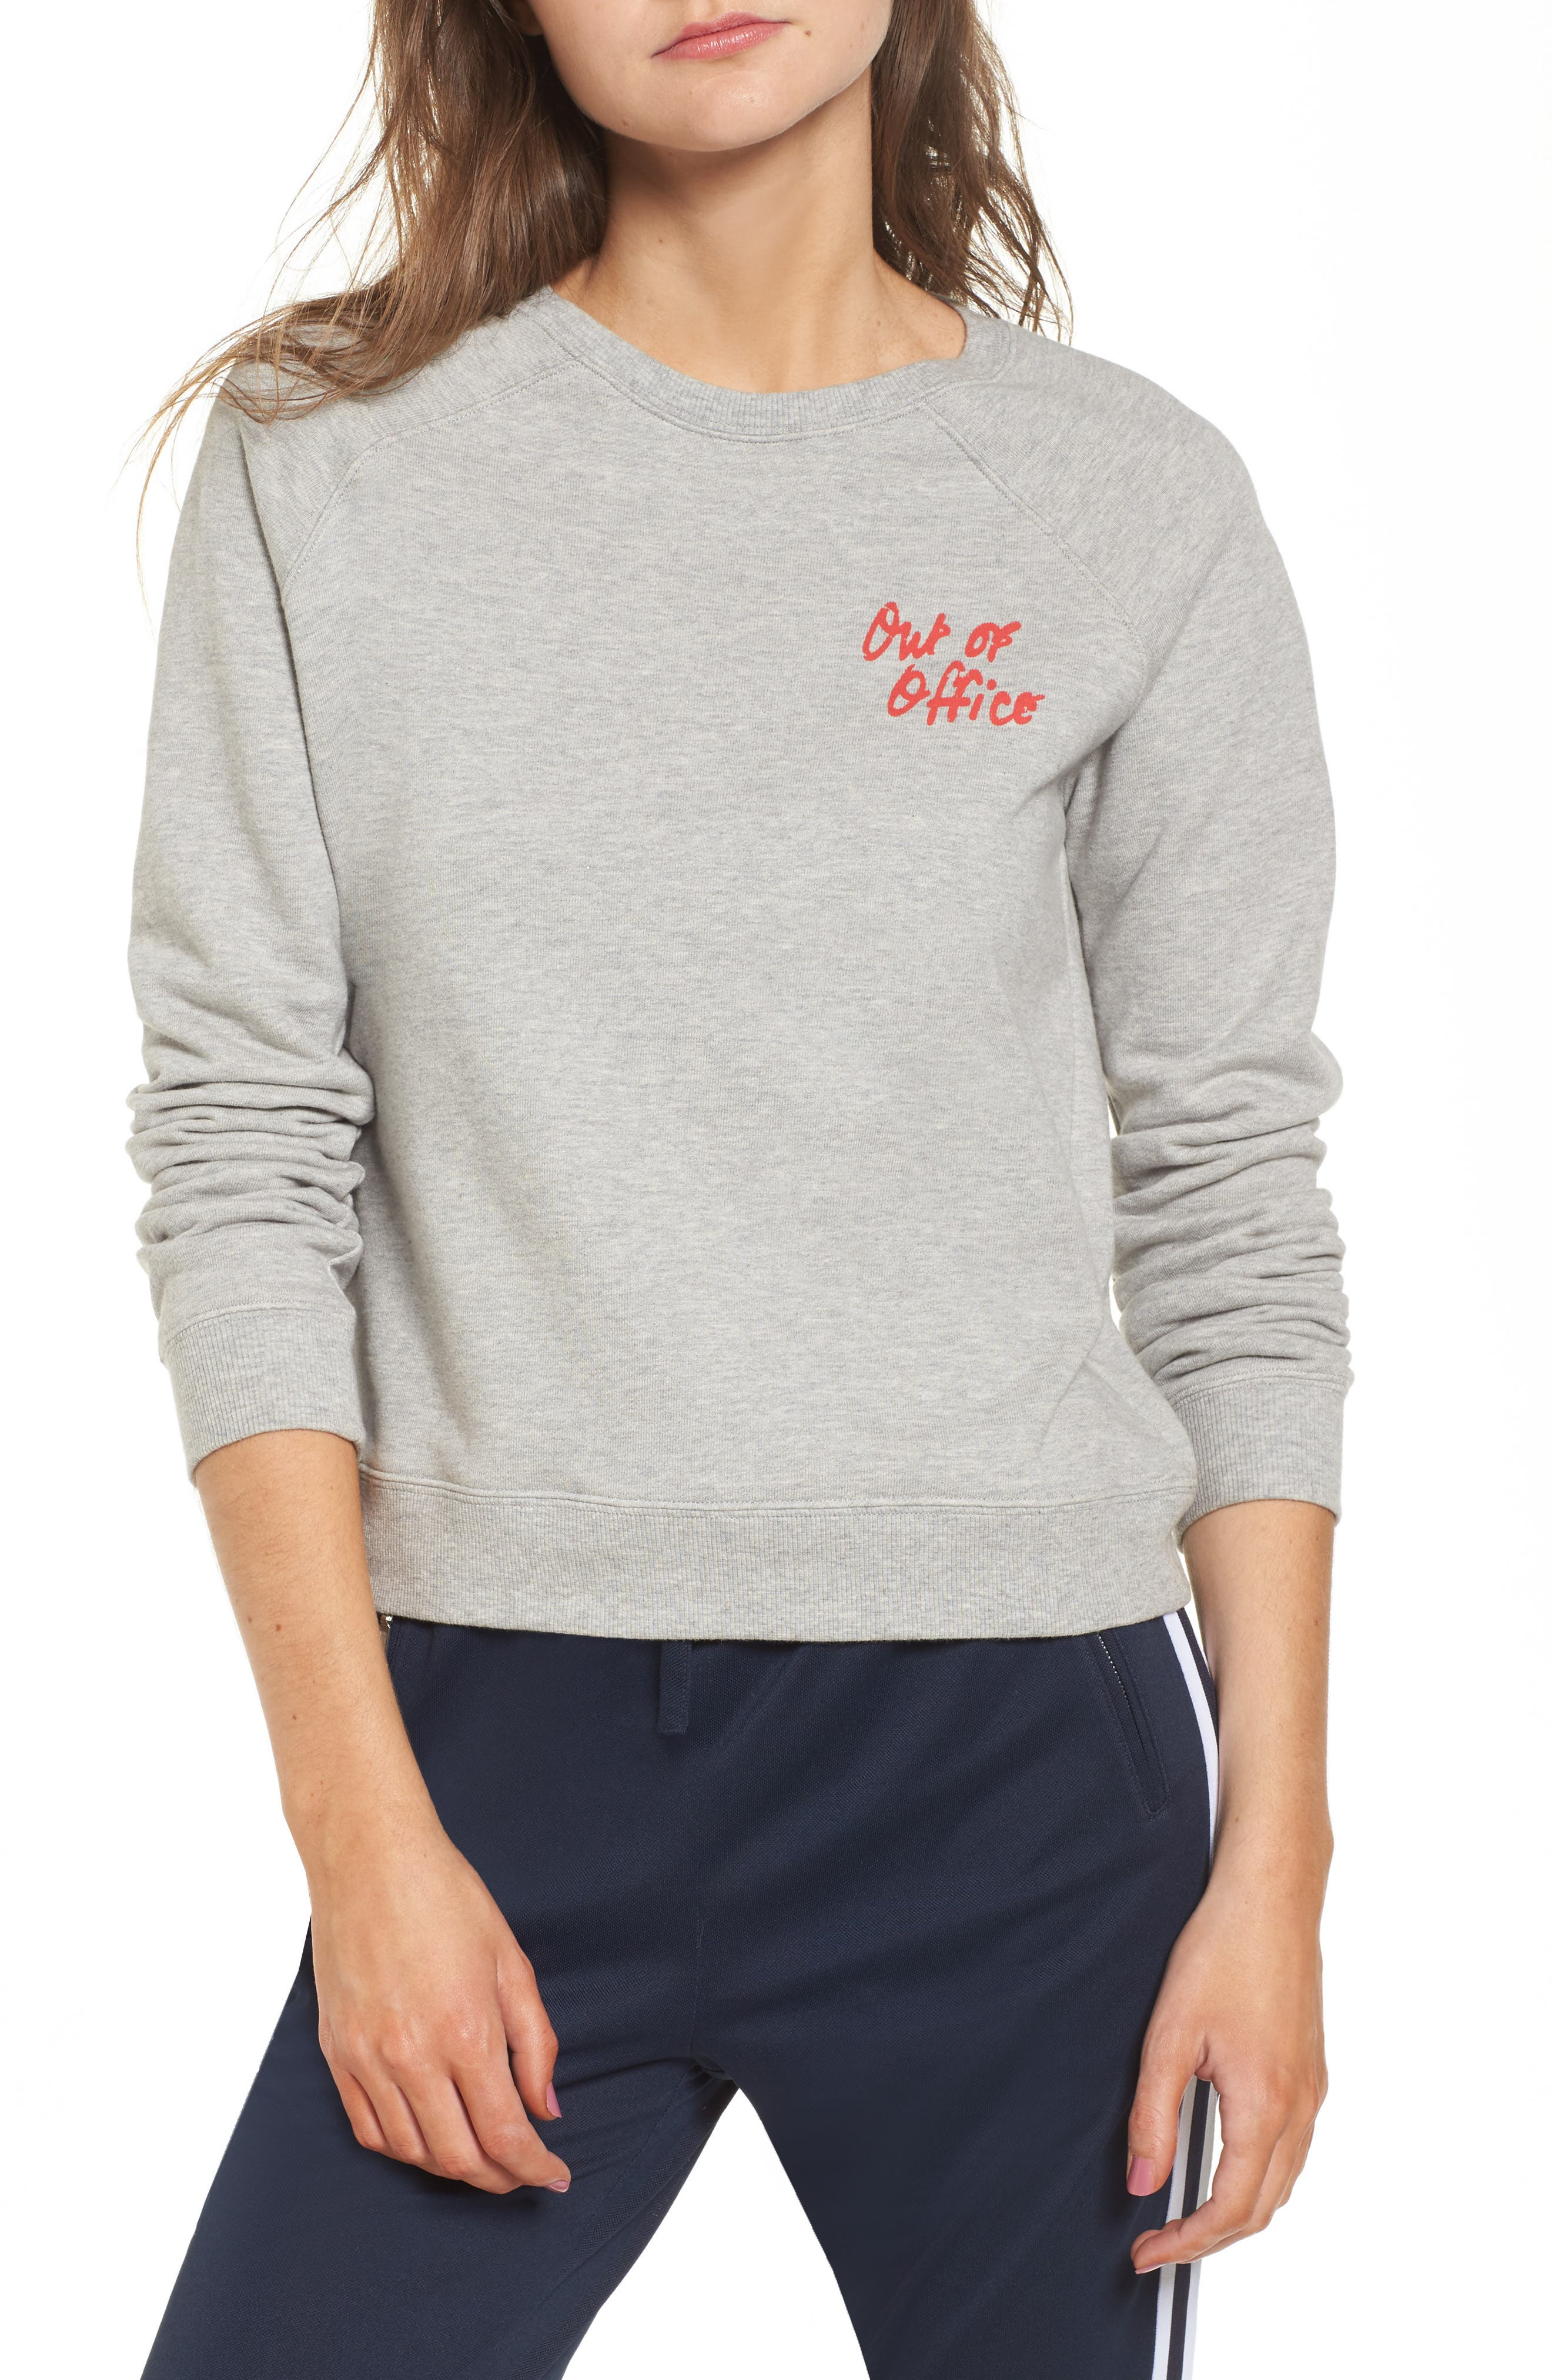 Out of Office Sweatshirt,                             Main thumbnail 1, color,                             Heather Grey/ Red